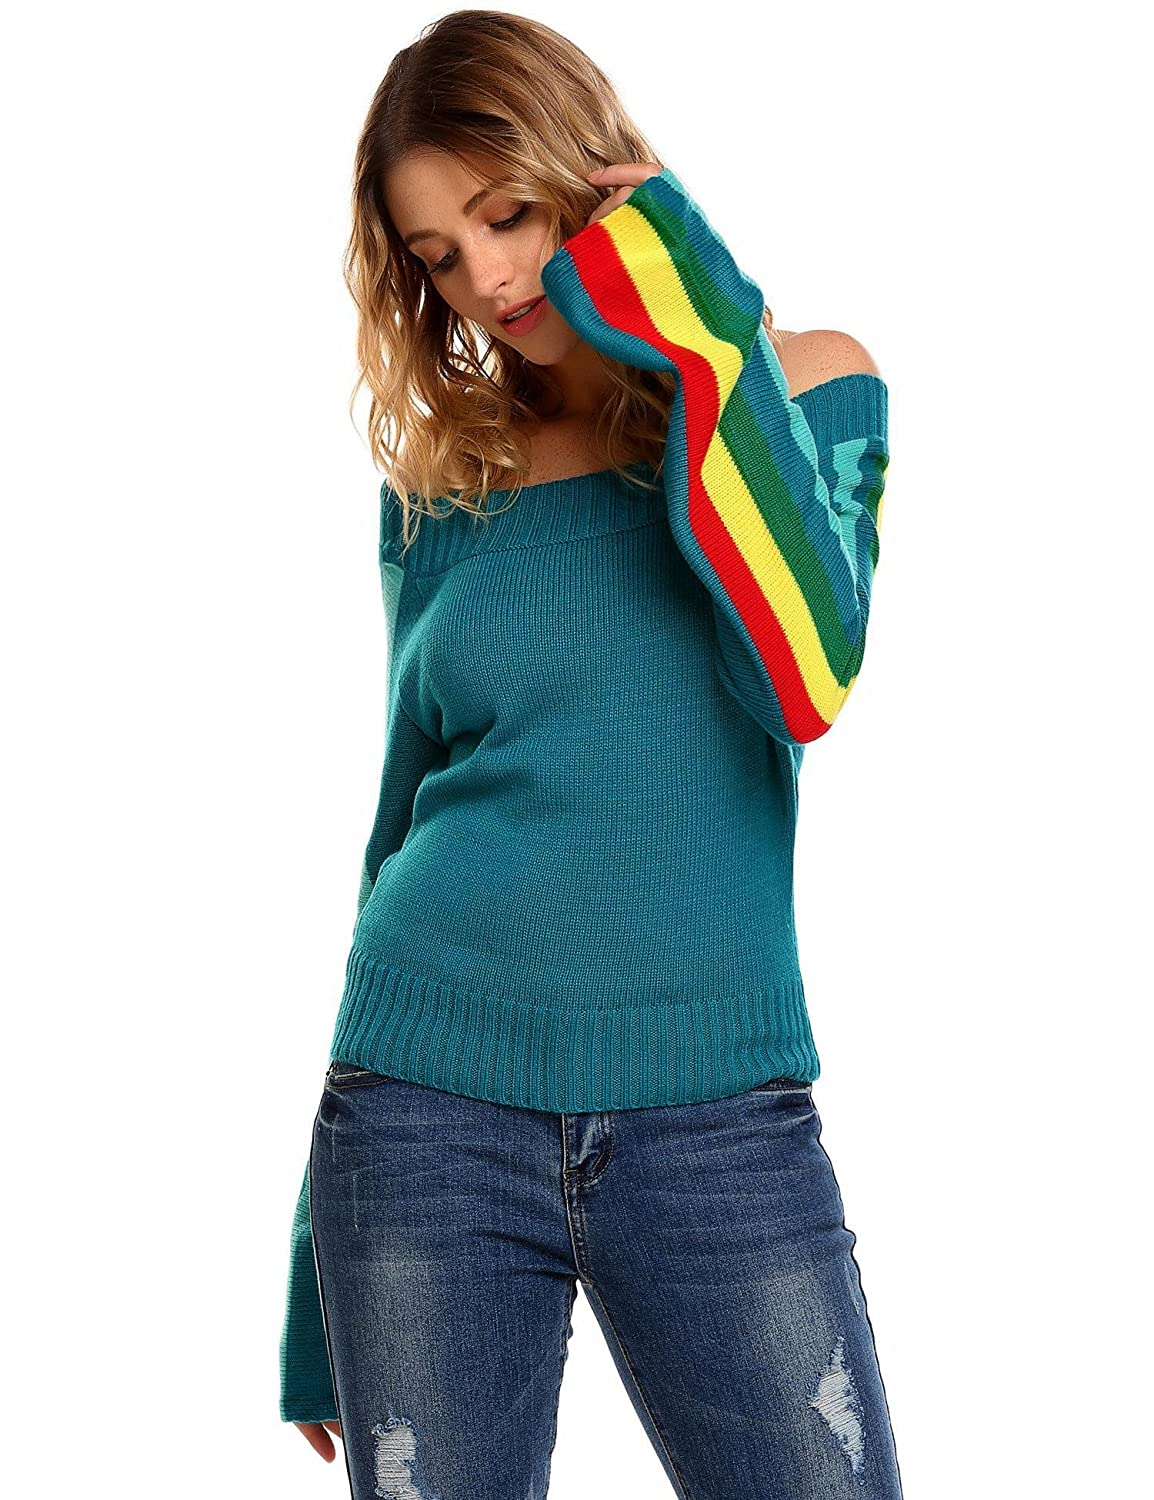 SummerRio Women Sweater Sexy Off Shoulder Long Sleeve Pullover Striped Sweater Top for New Year